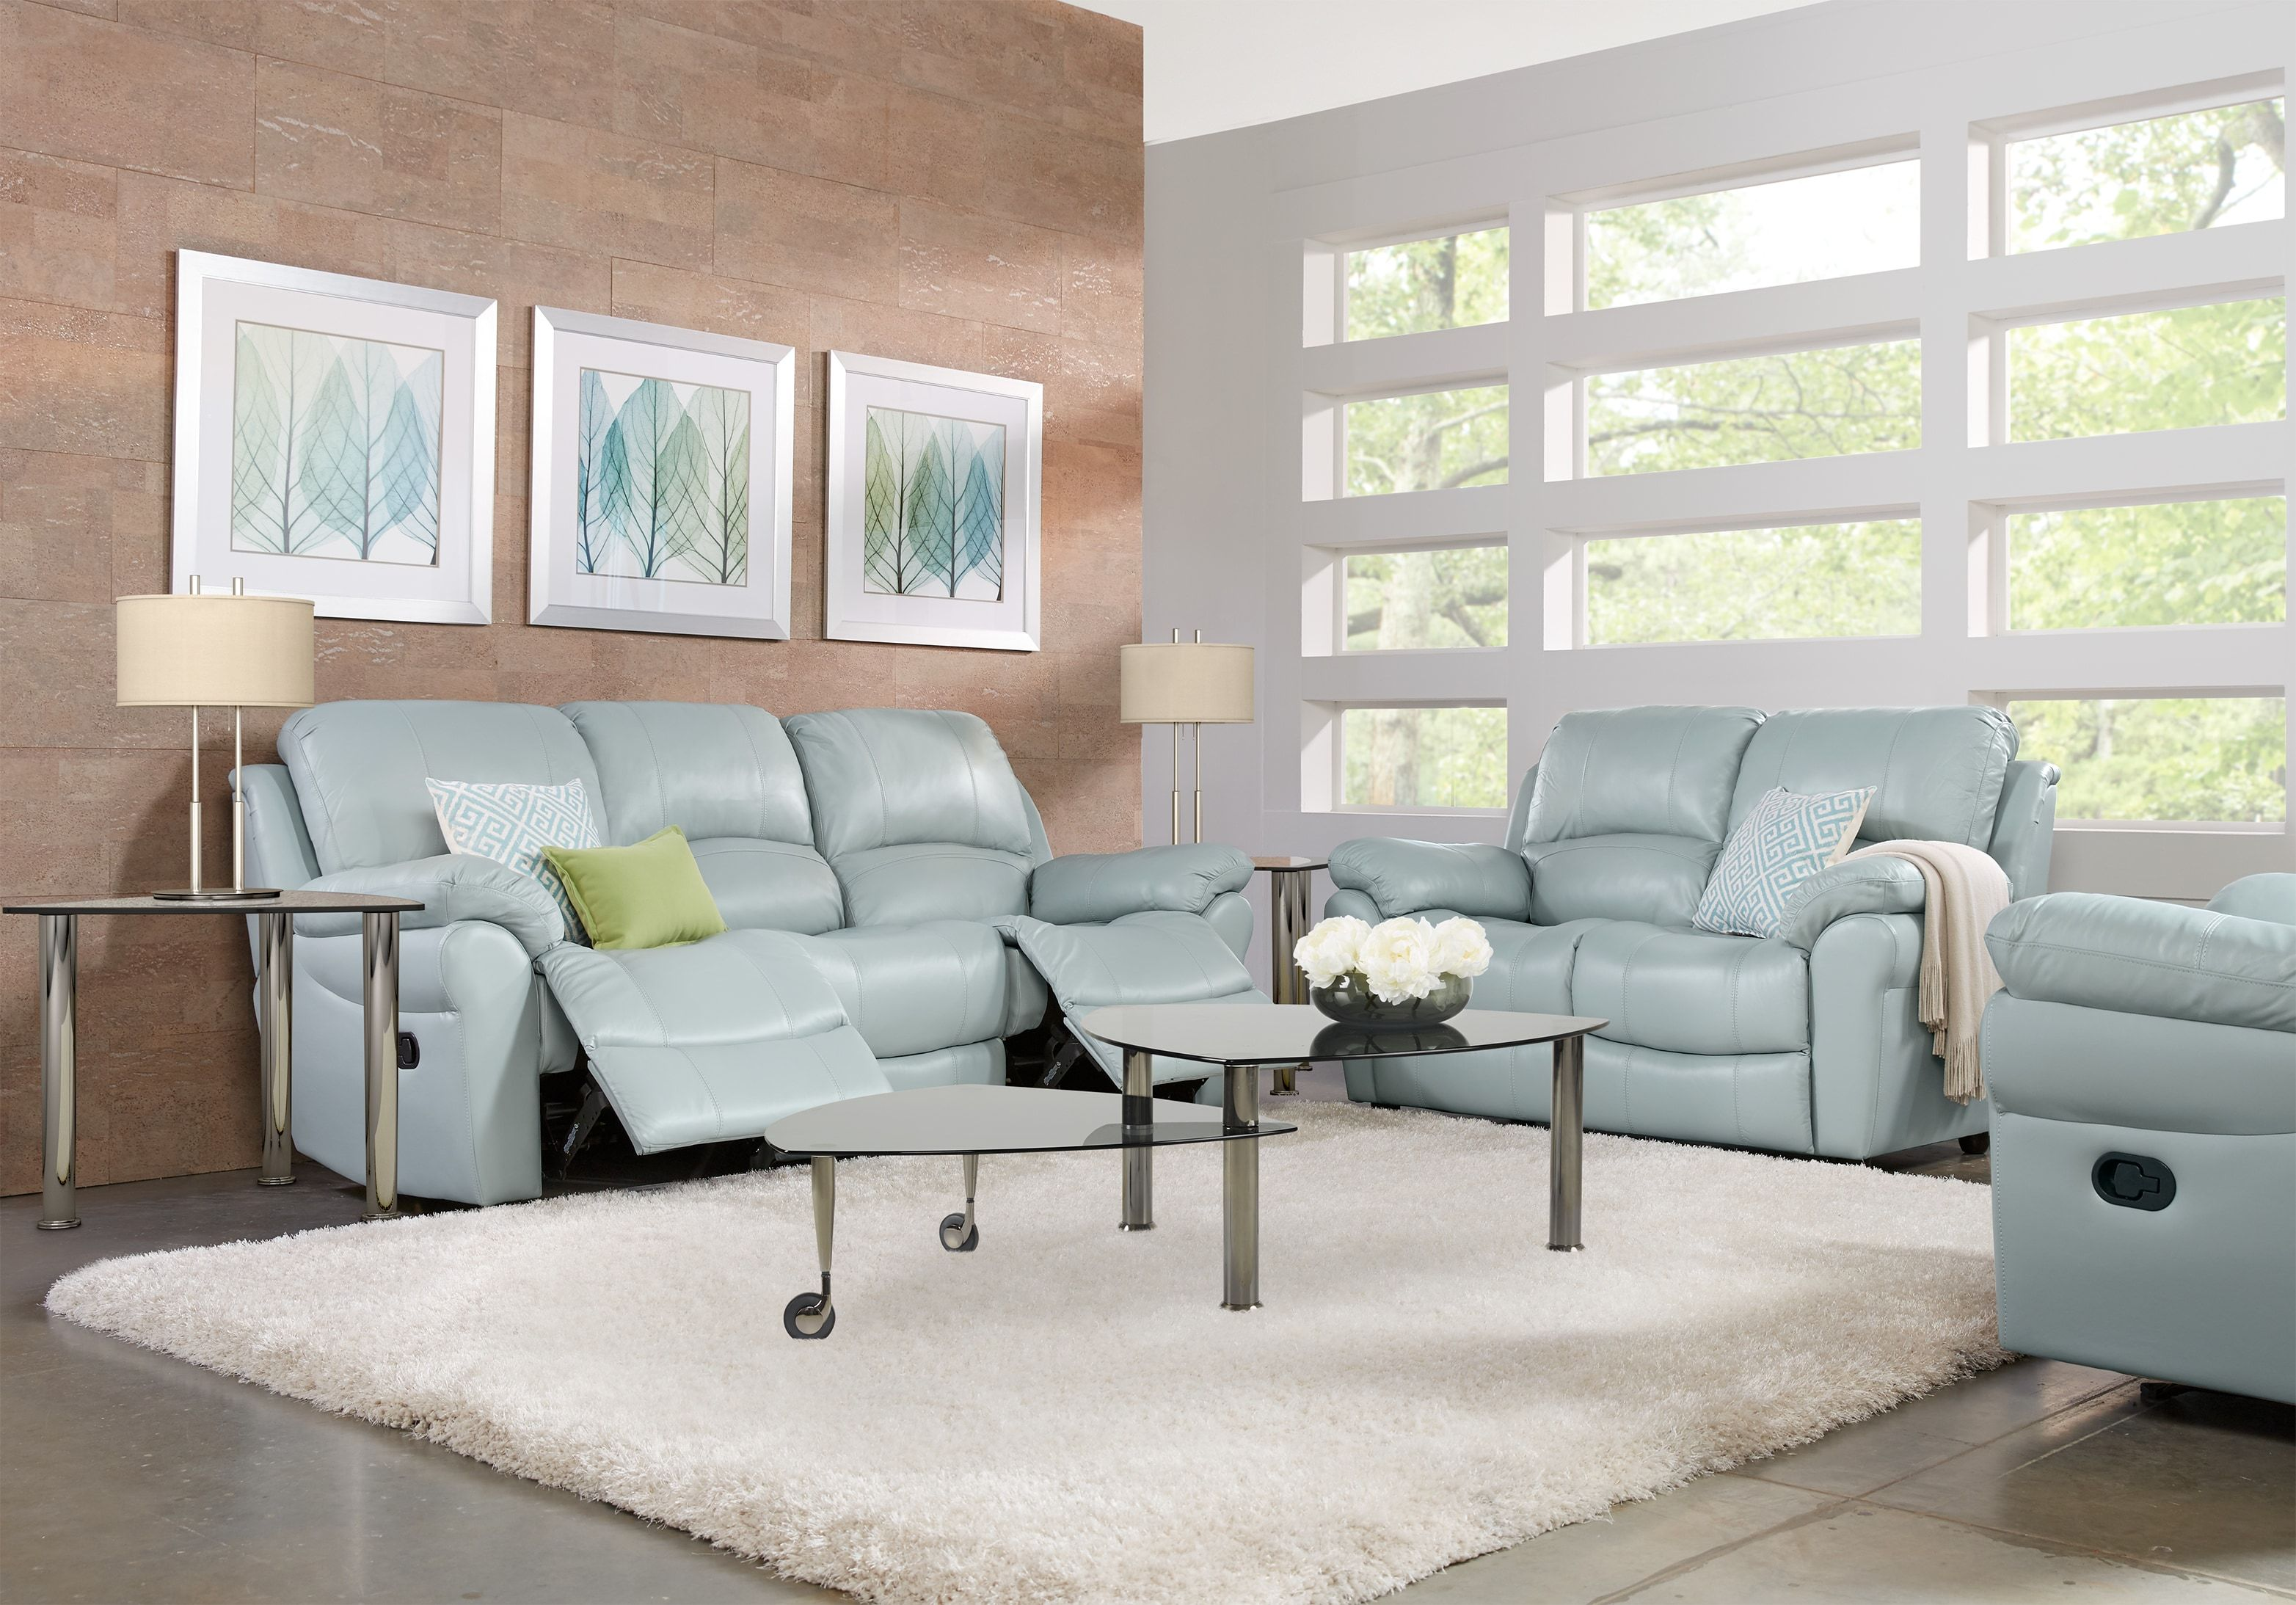 Best Vercelli Aqua Leather 5 Pc Living Room With Reclining Sofa 640 x 480